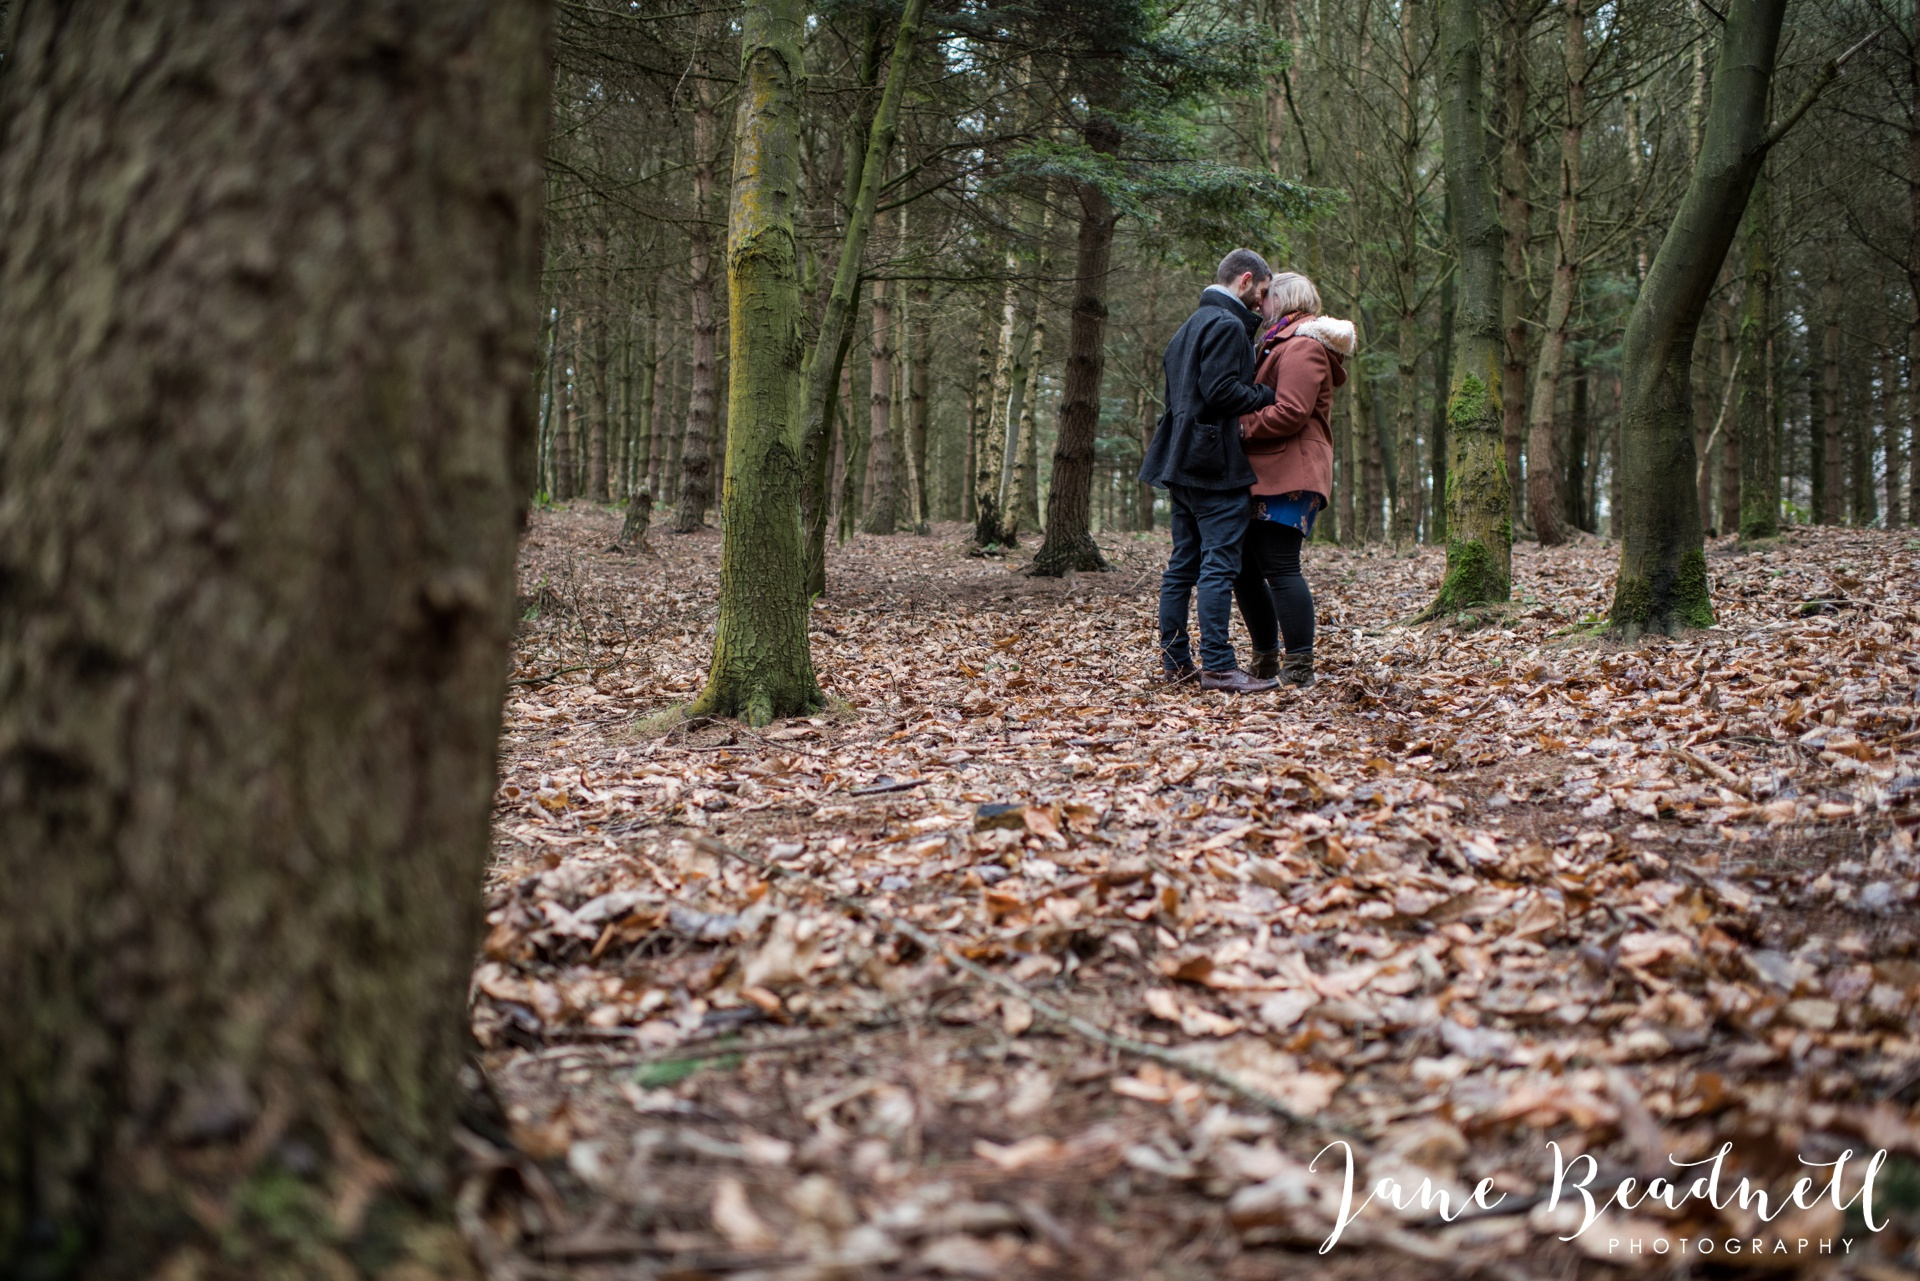 engagement photography Chevin jane beadnell wedding photographer Otley_0012